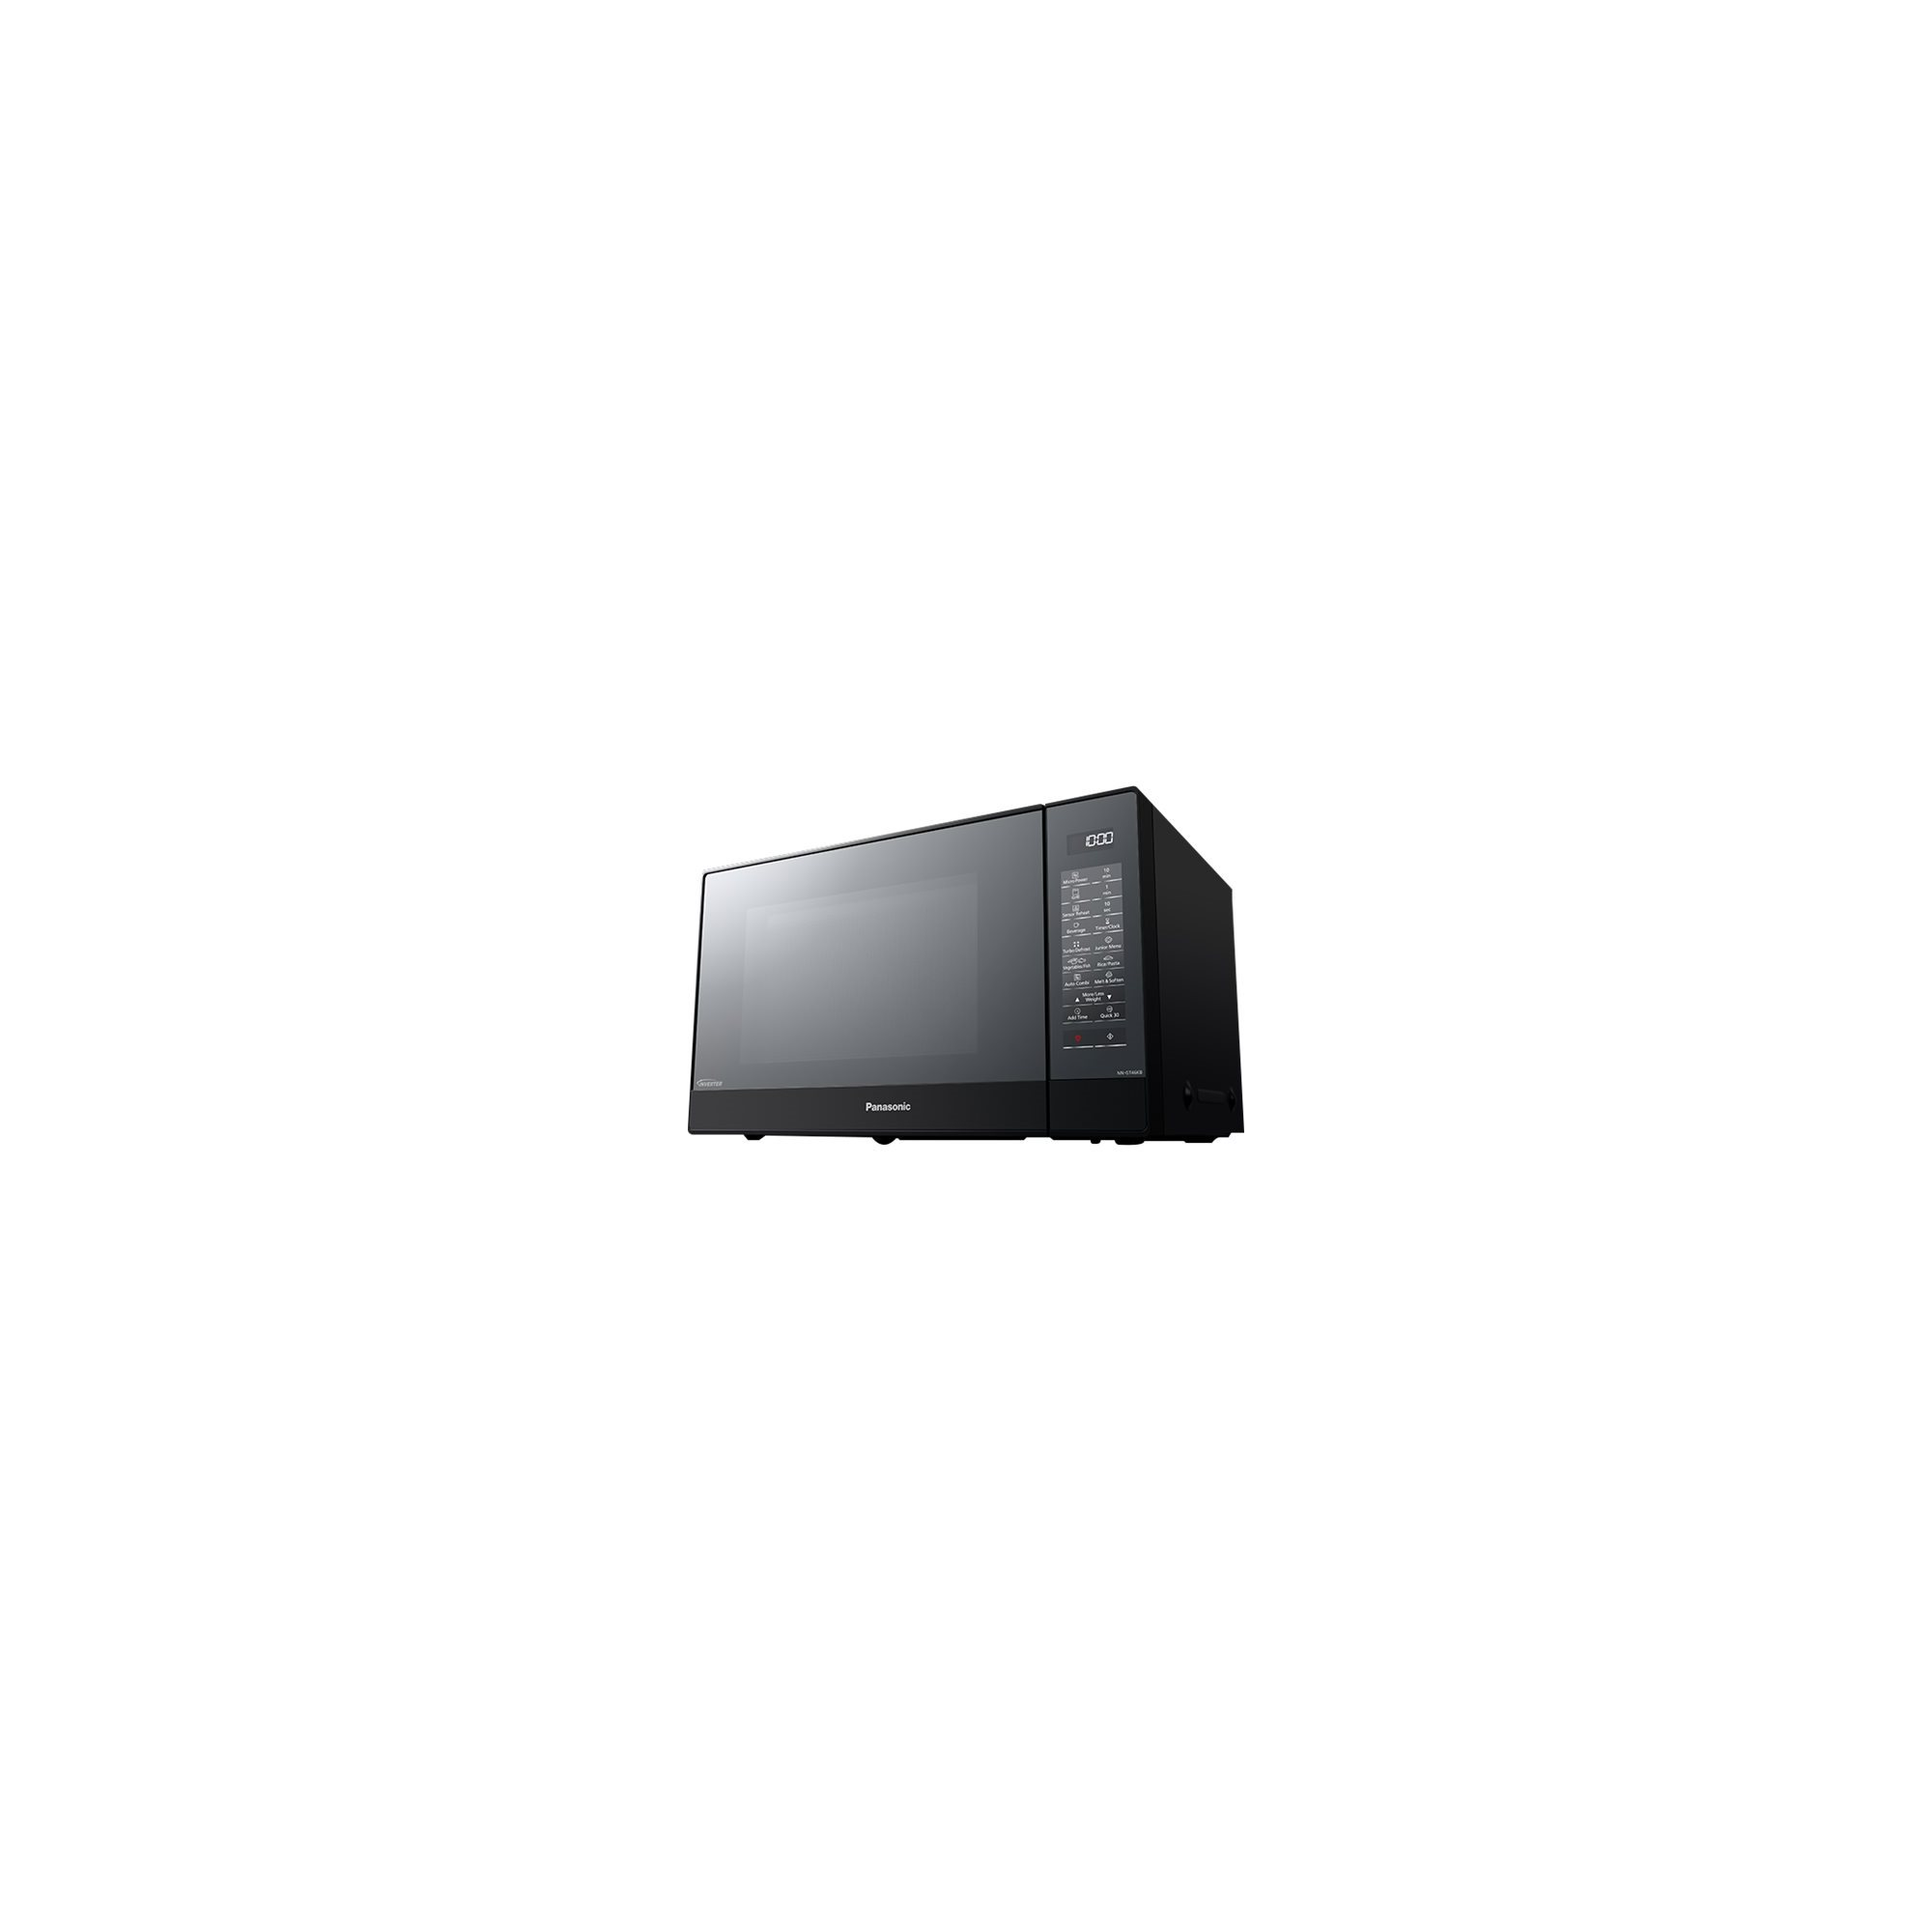 Panasonic NN-GT46KBSUG - microwave oven with grill - freestanding - black